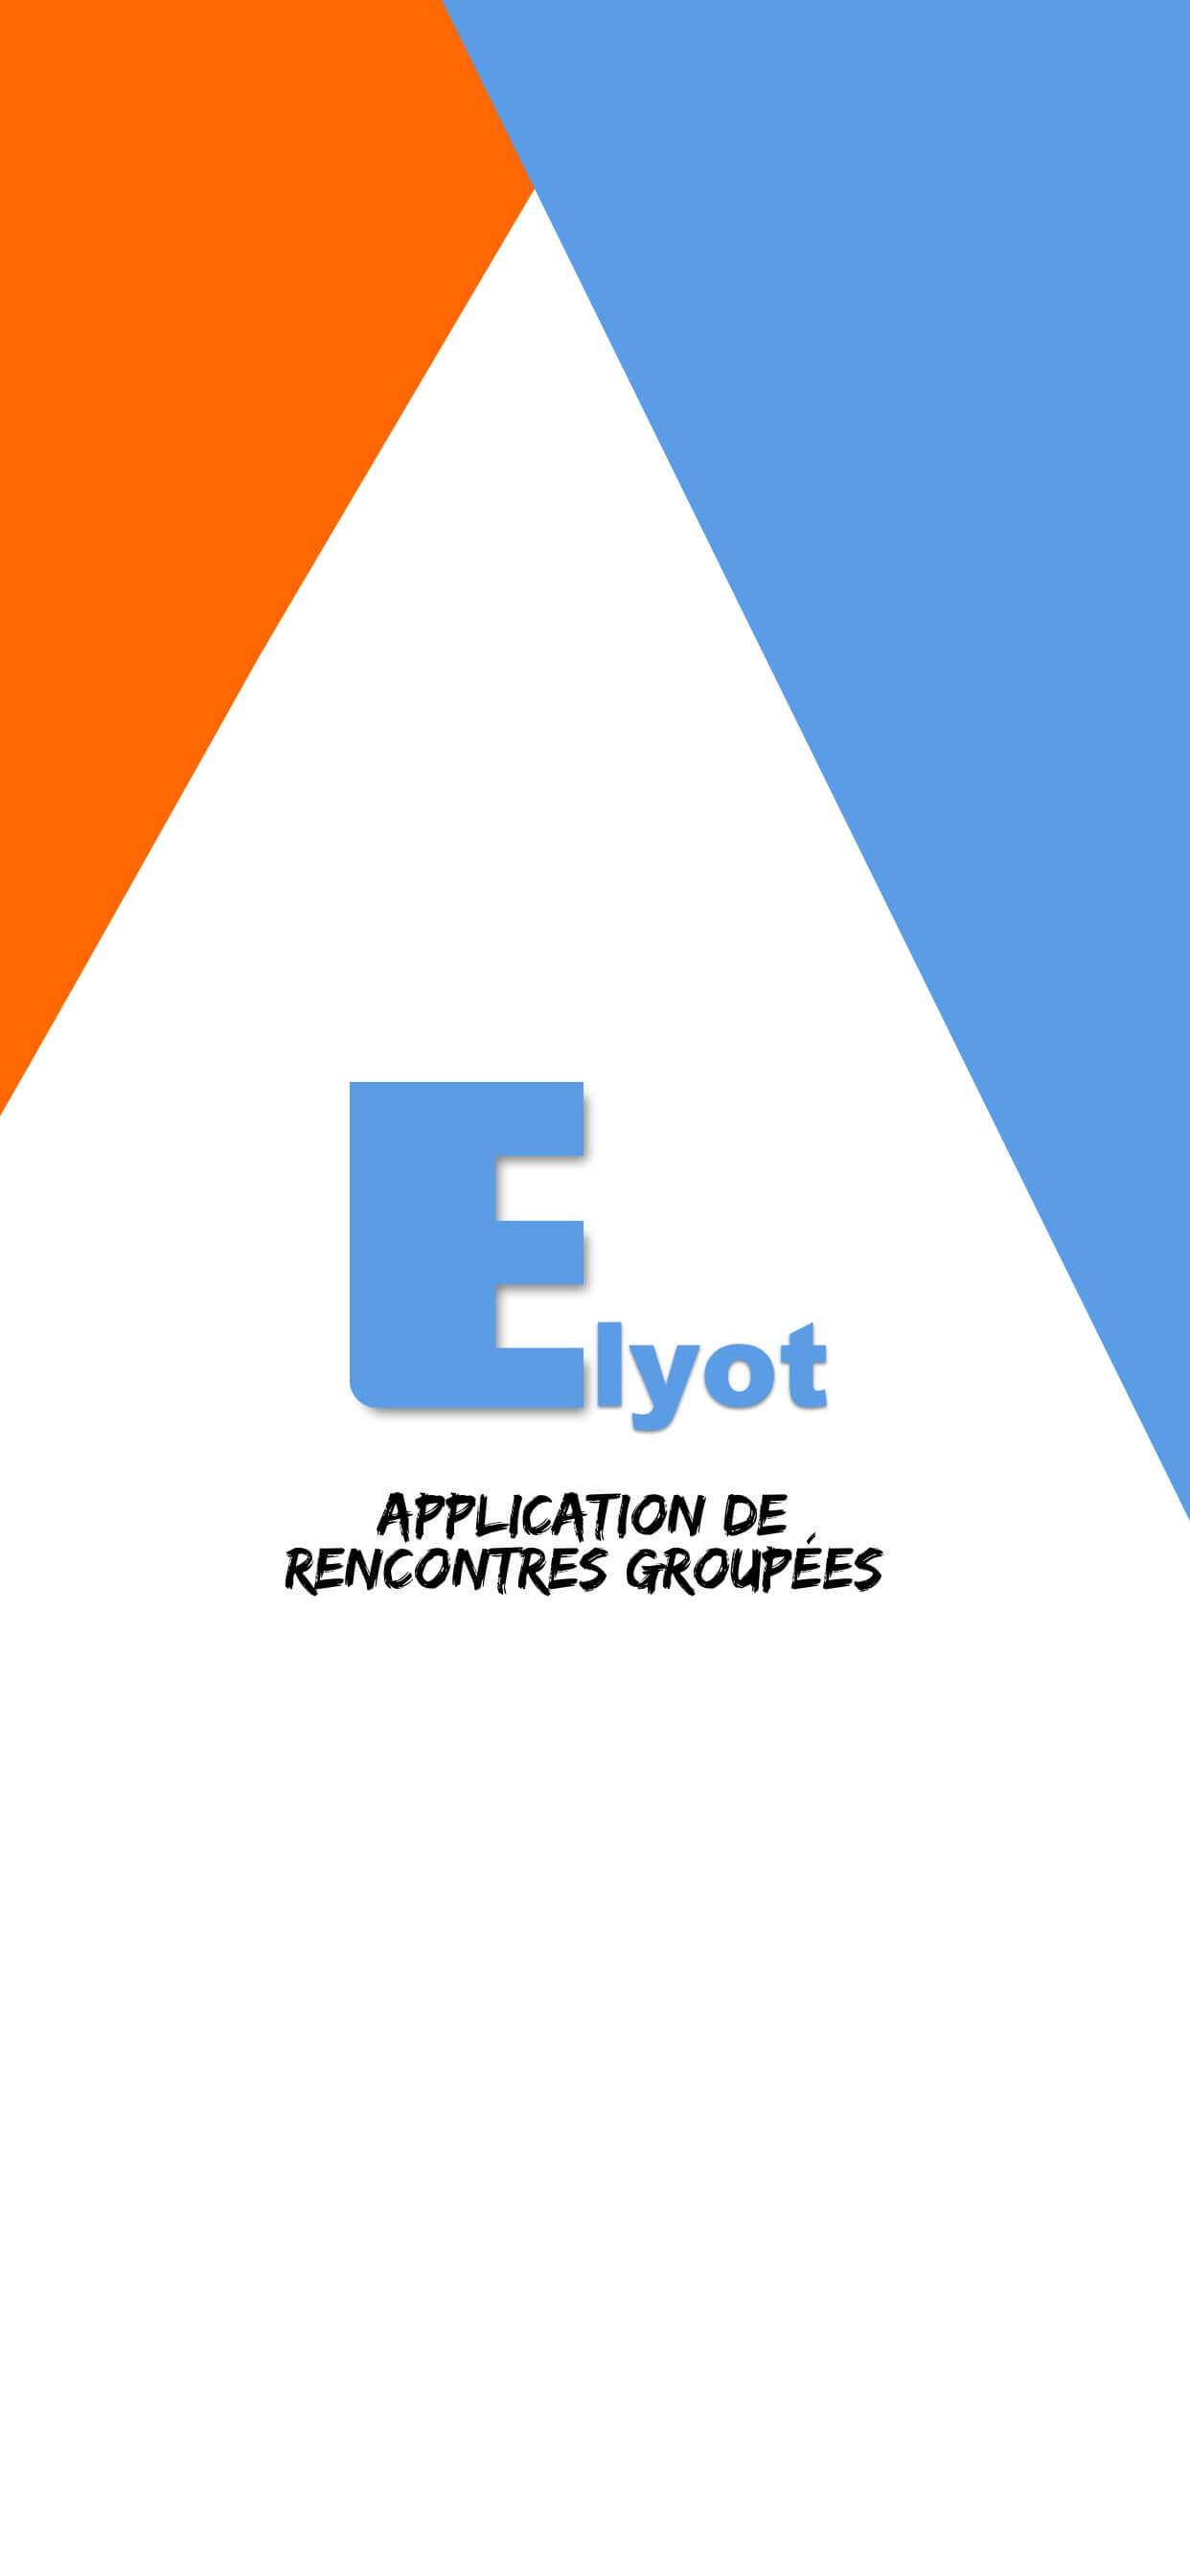 elyot-application-ios-iphone-freelance-bordeaux-jeremy-peltier-1